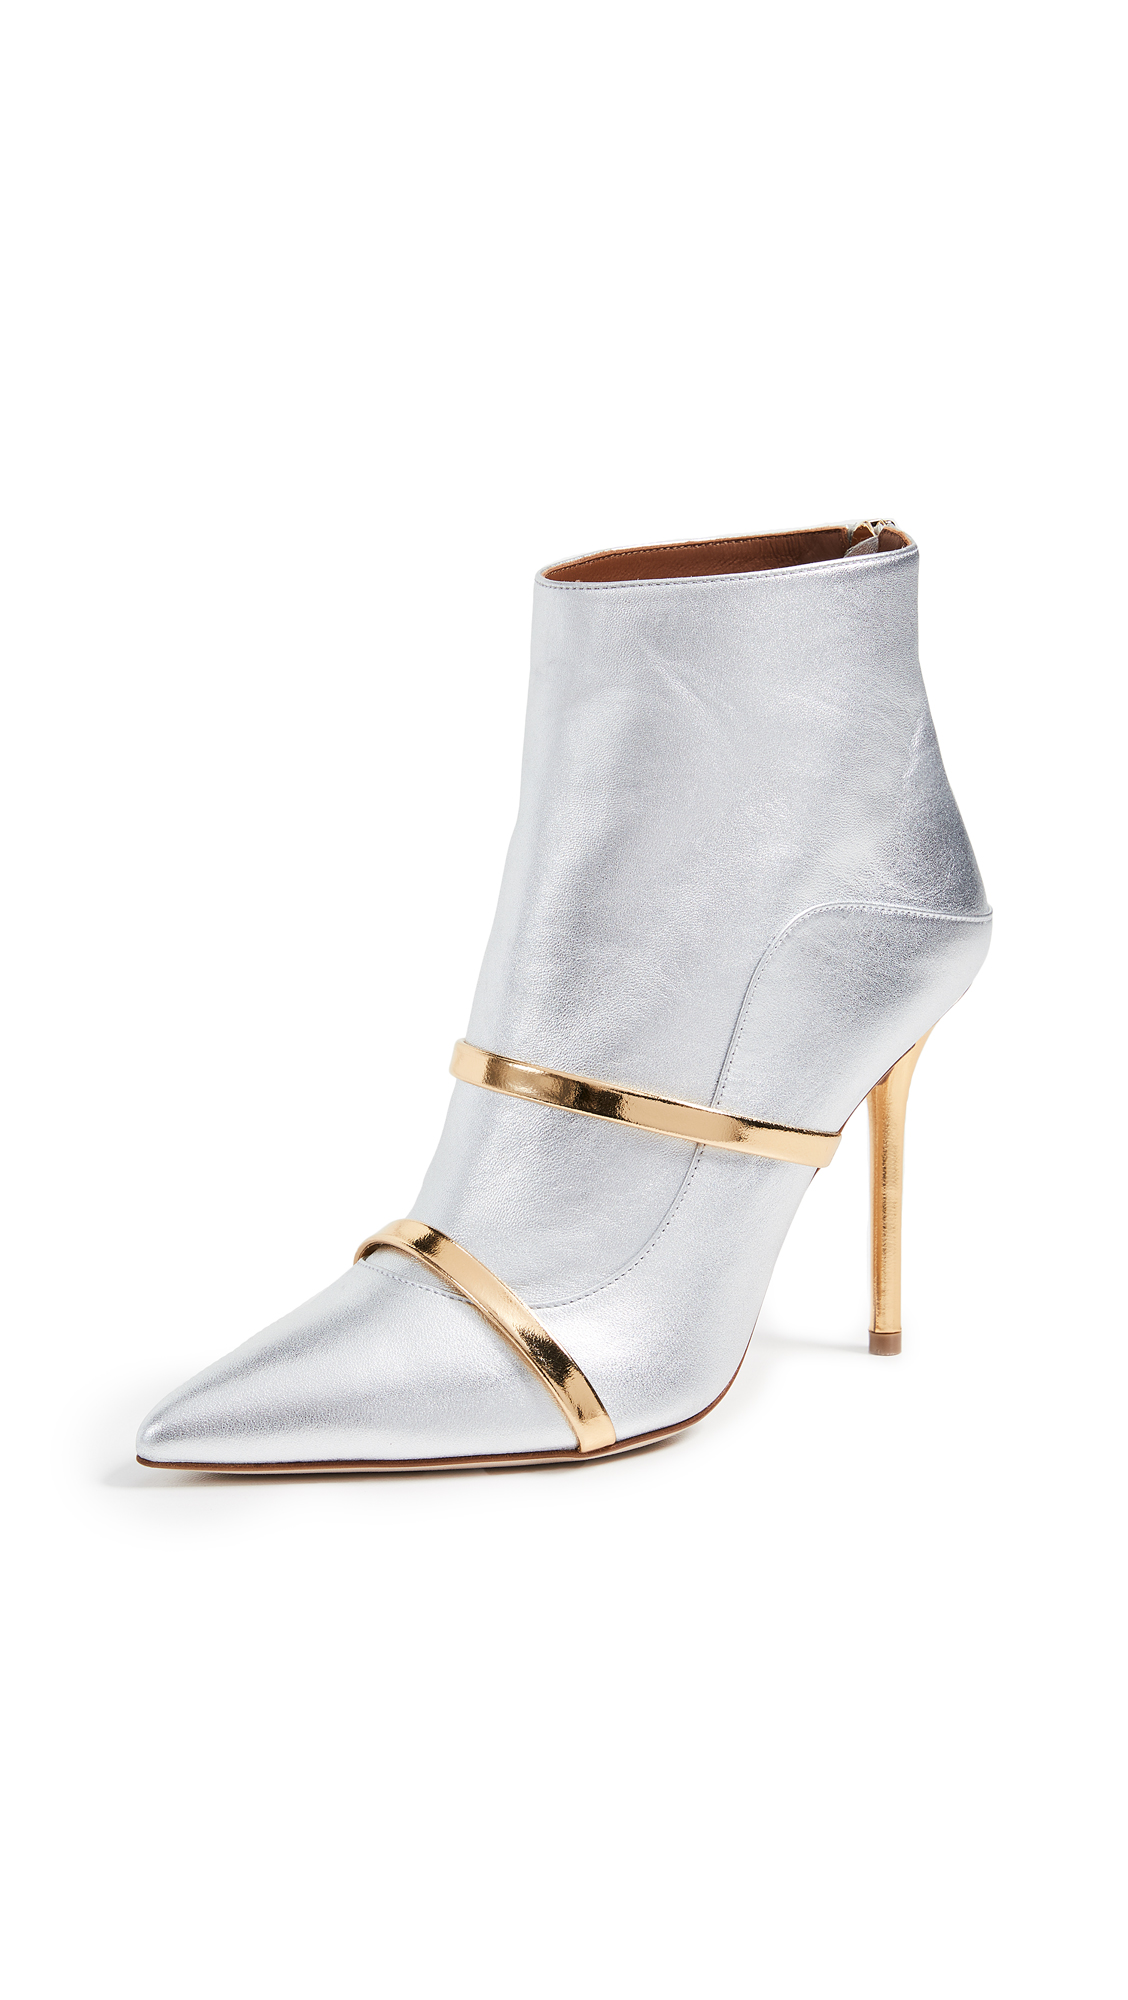 Malone Souliers Madison Booties - Silver/Gold